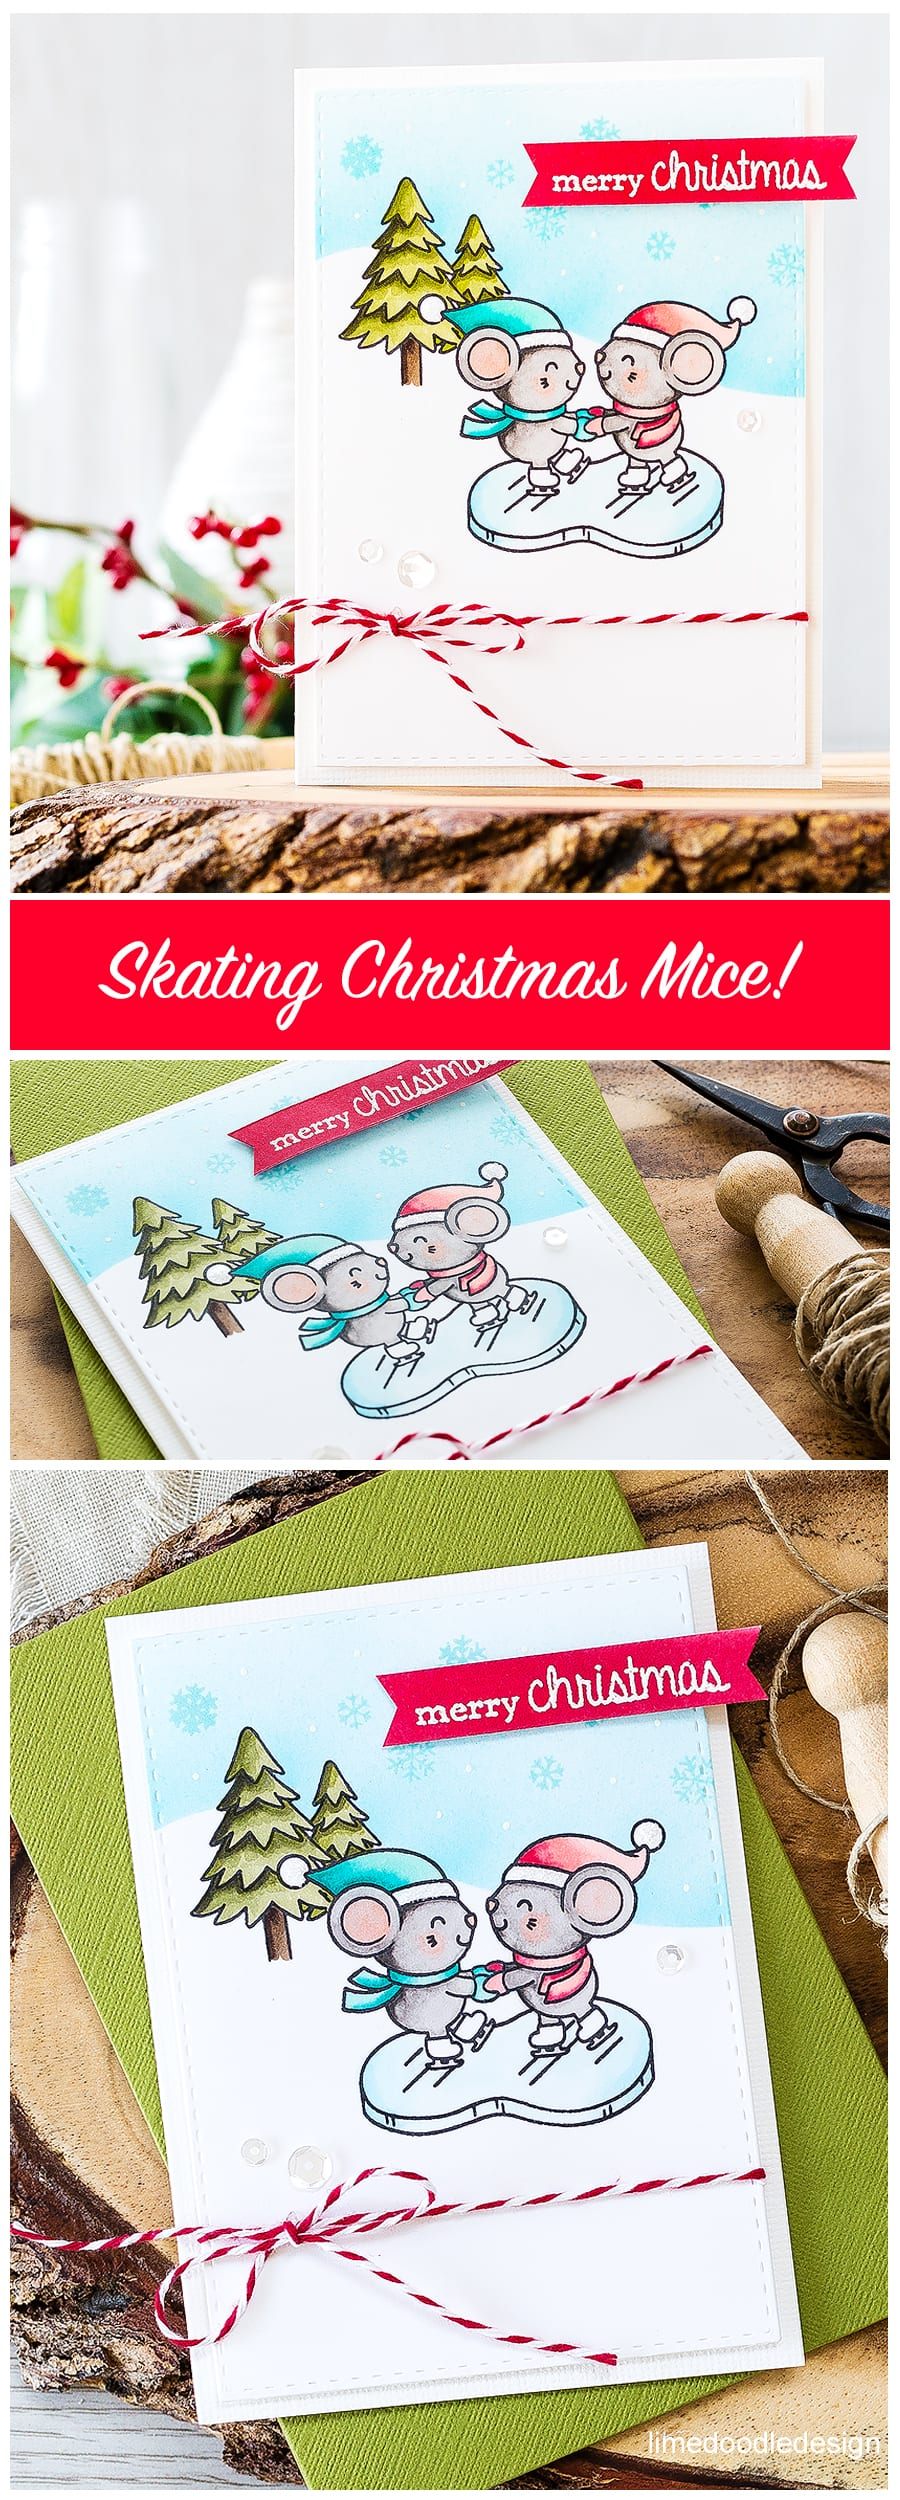 Ice Skating Mice! Find out more about this card by clicking on the following link: https://limedoodledesign.com/2016/09/ice-skating-mice/